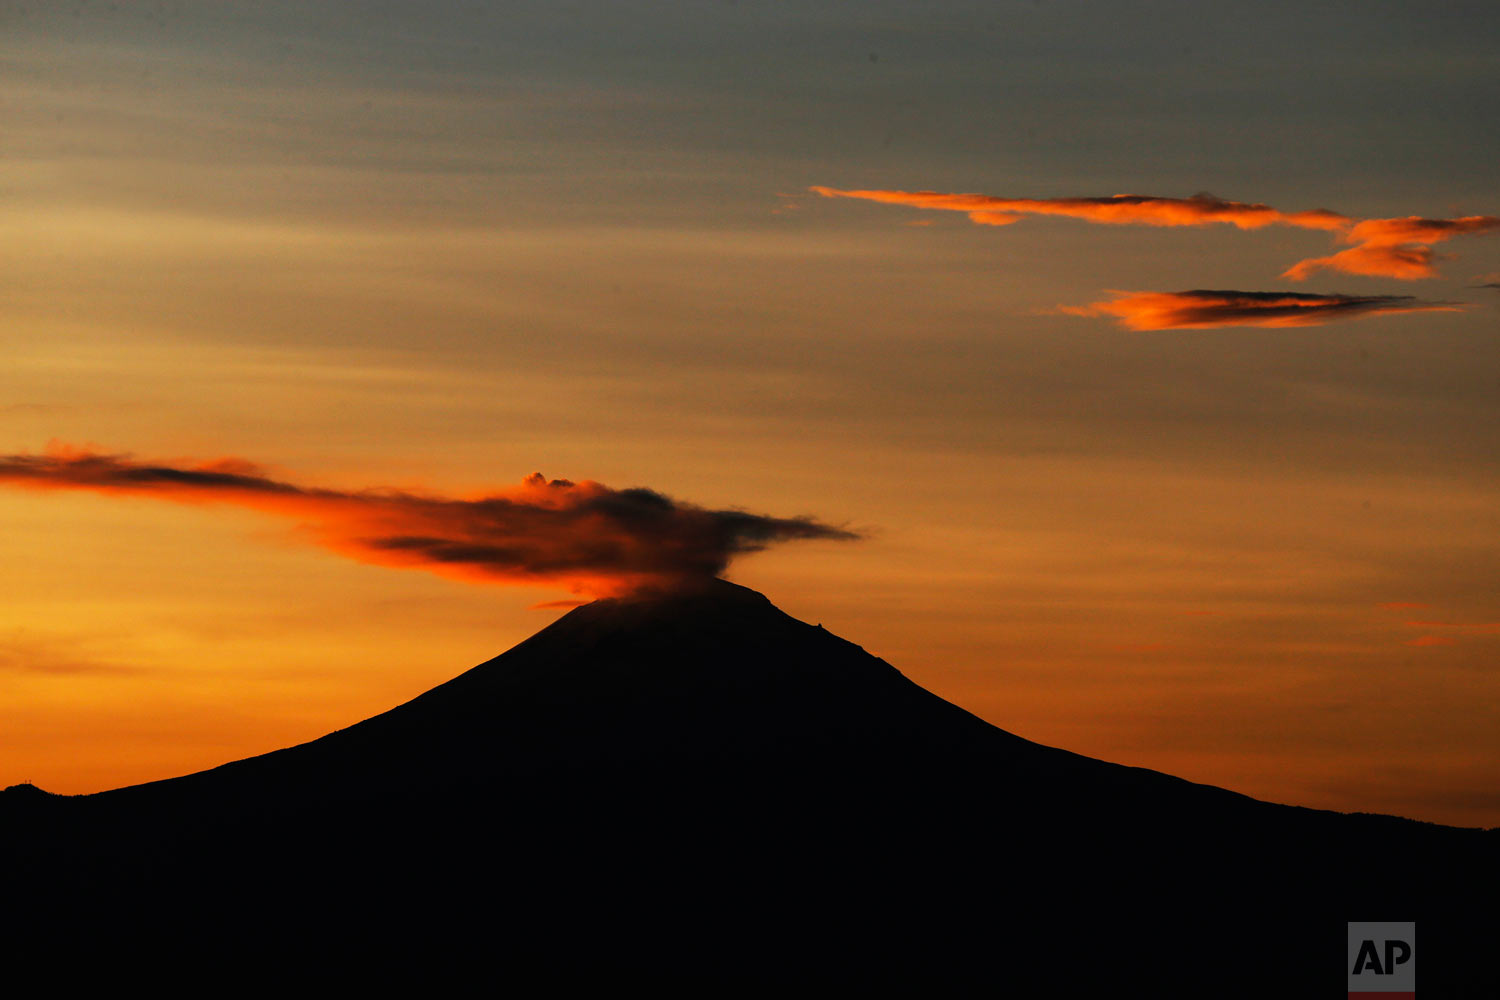 """A plume of ash and steam rise from the Popocatepetl volcano, seen from Mexico City, Oct. 15, 2018. The volcano known as """"Don Goyo"""" has been active since 1994. (AP Photo/Marco Ugarte)"""